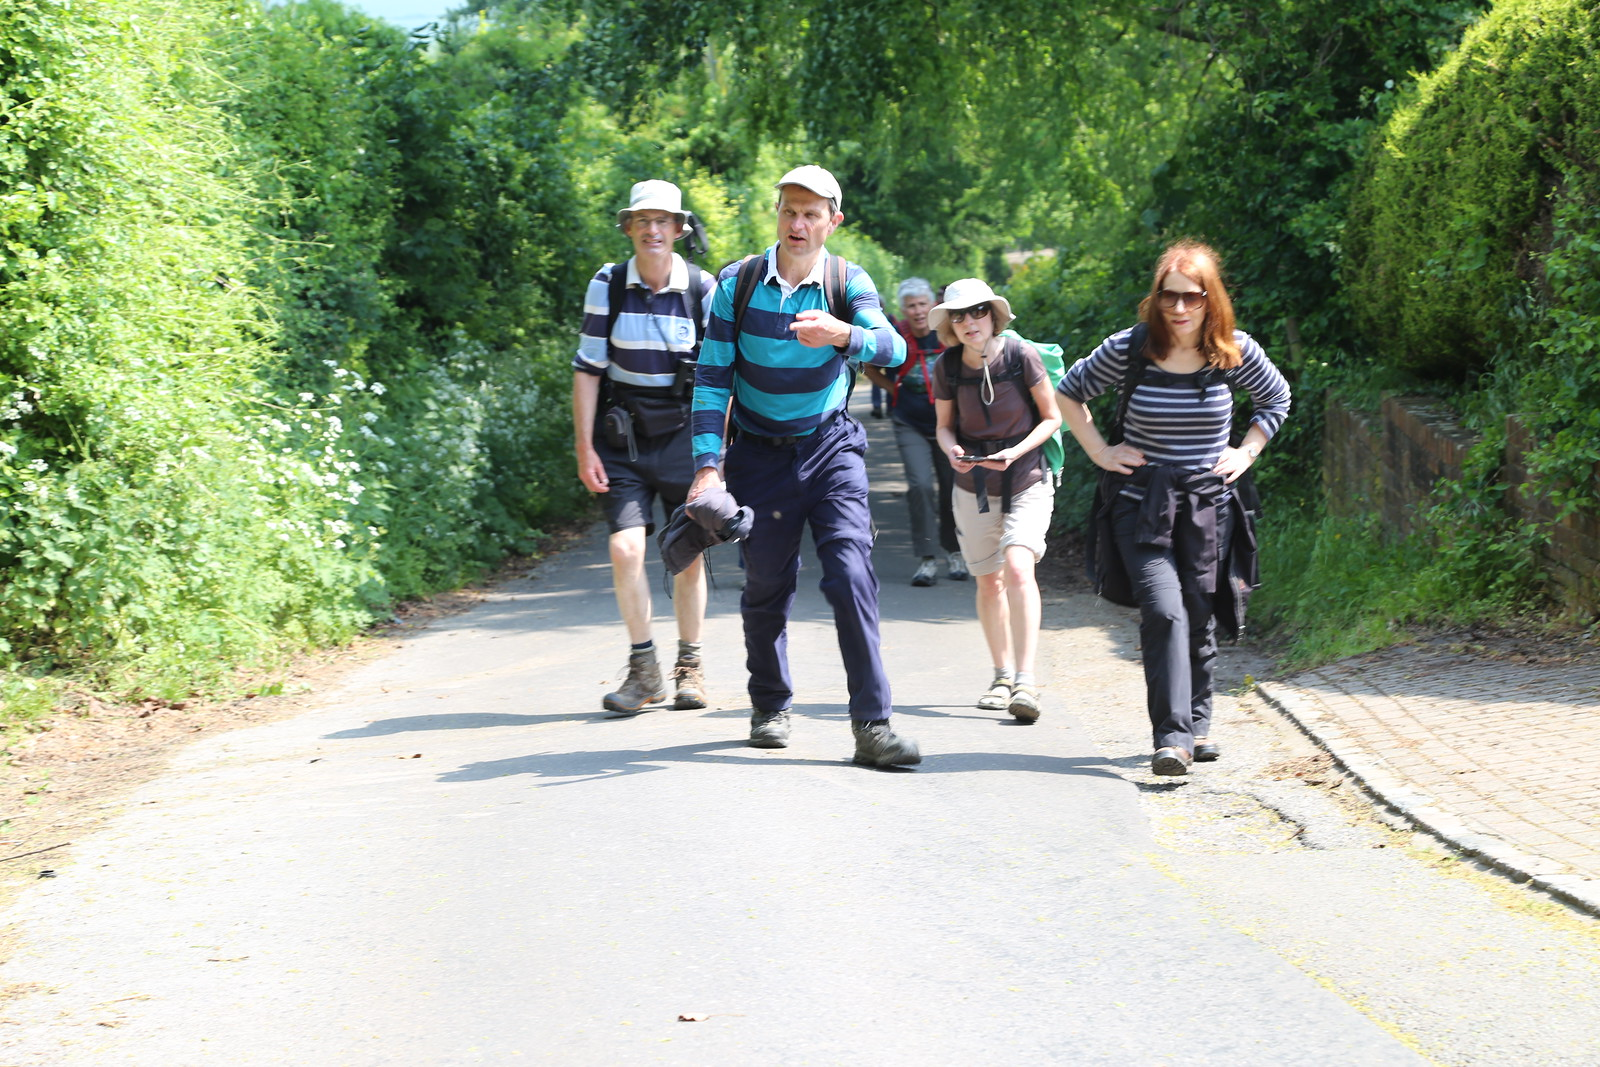 That way - Otford to Eynsford Walk